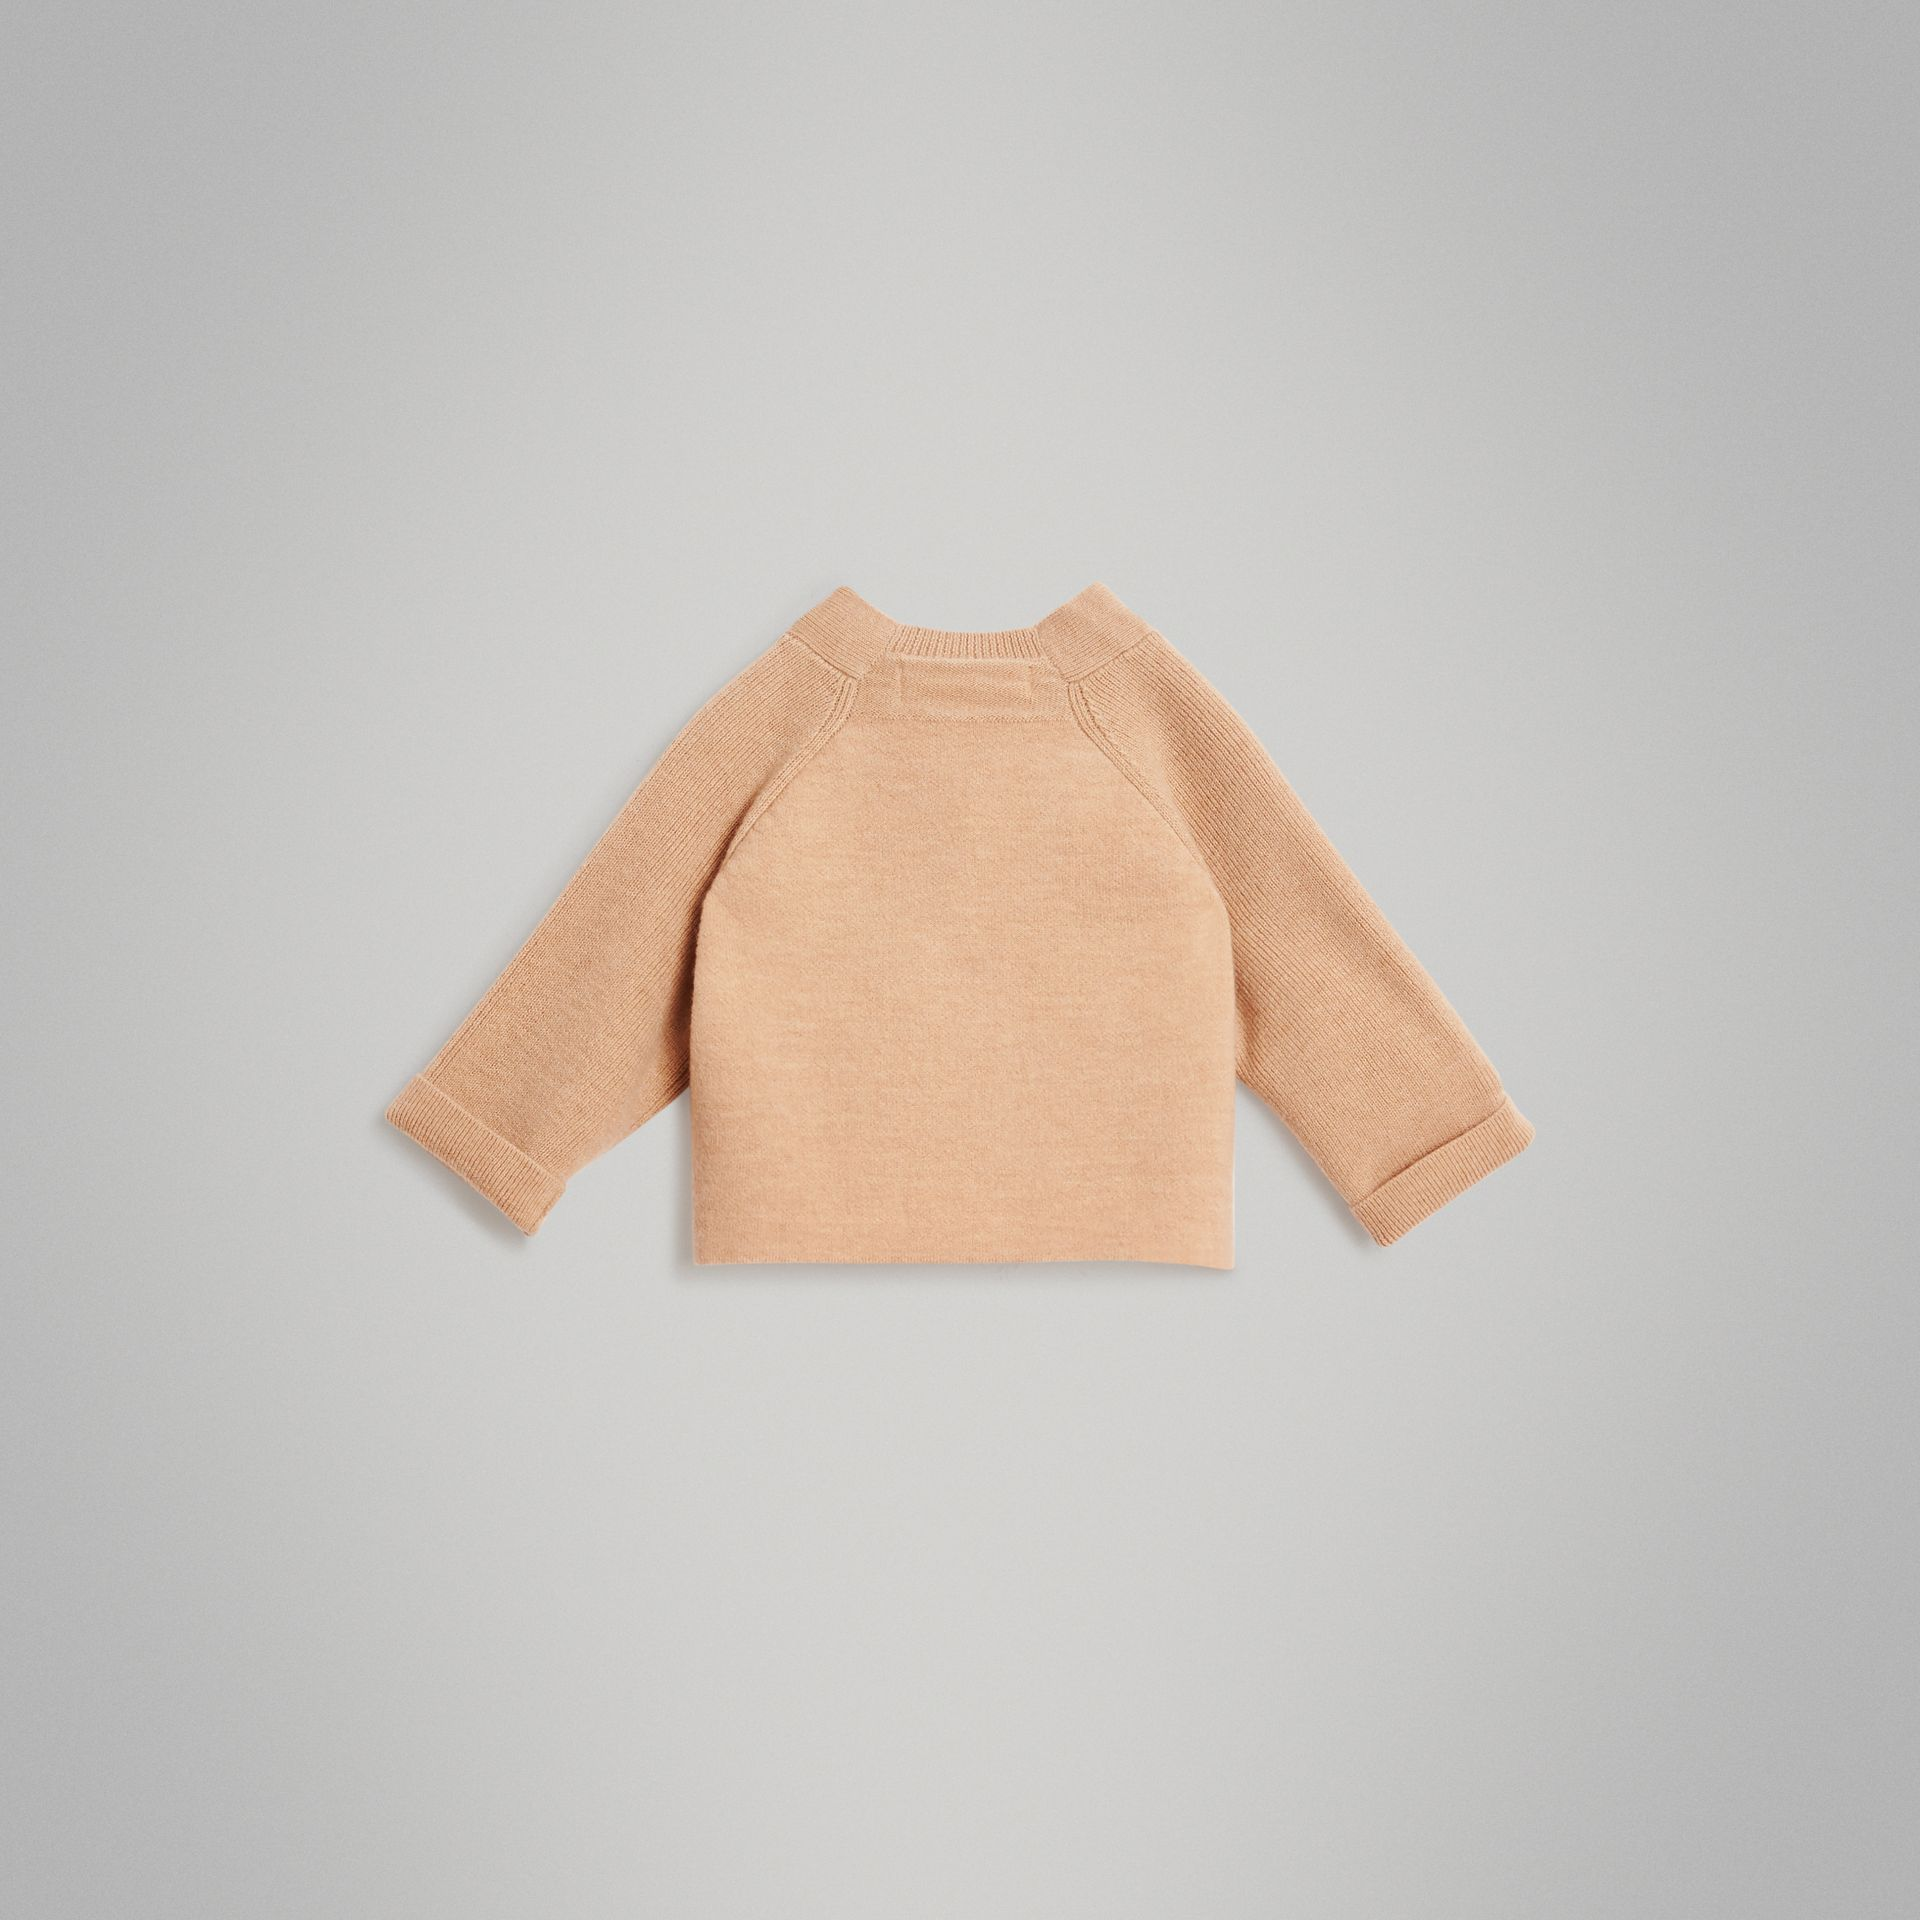 Cashmere Cotton Knit Cardigan in Peach - Children | Burberry Australia - gallery image 3